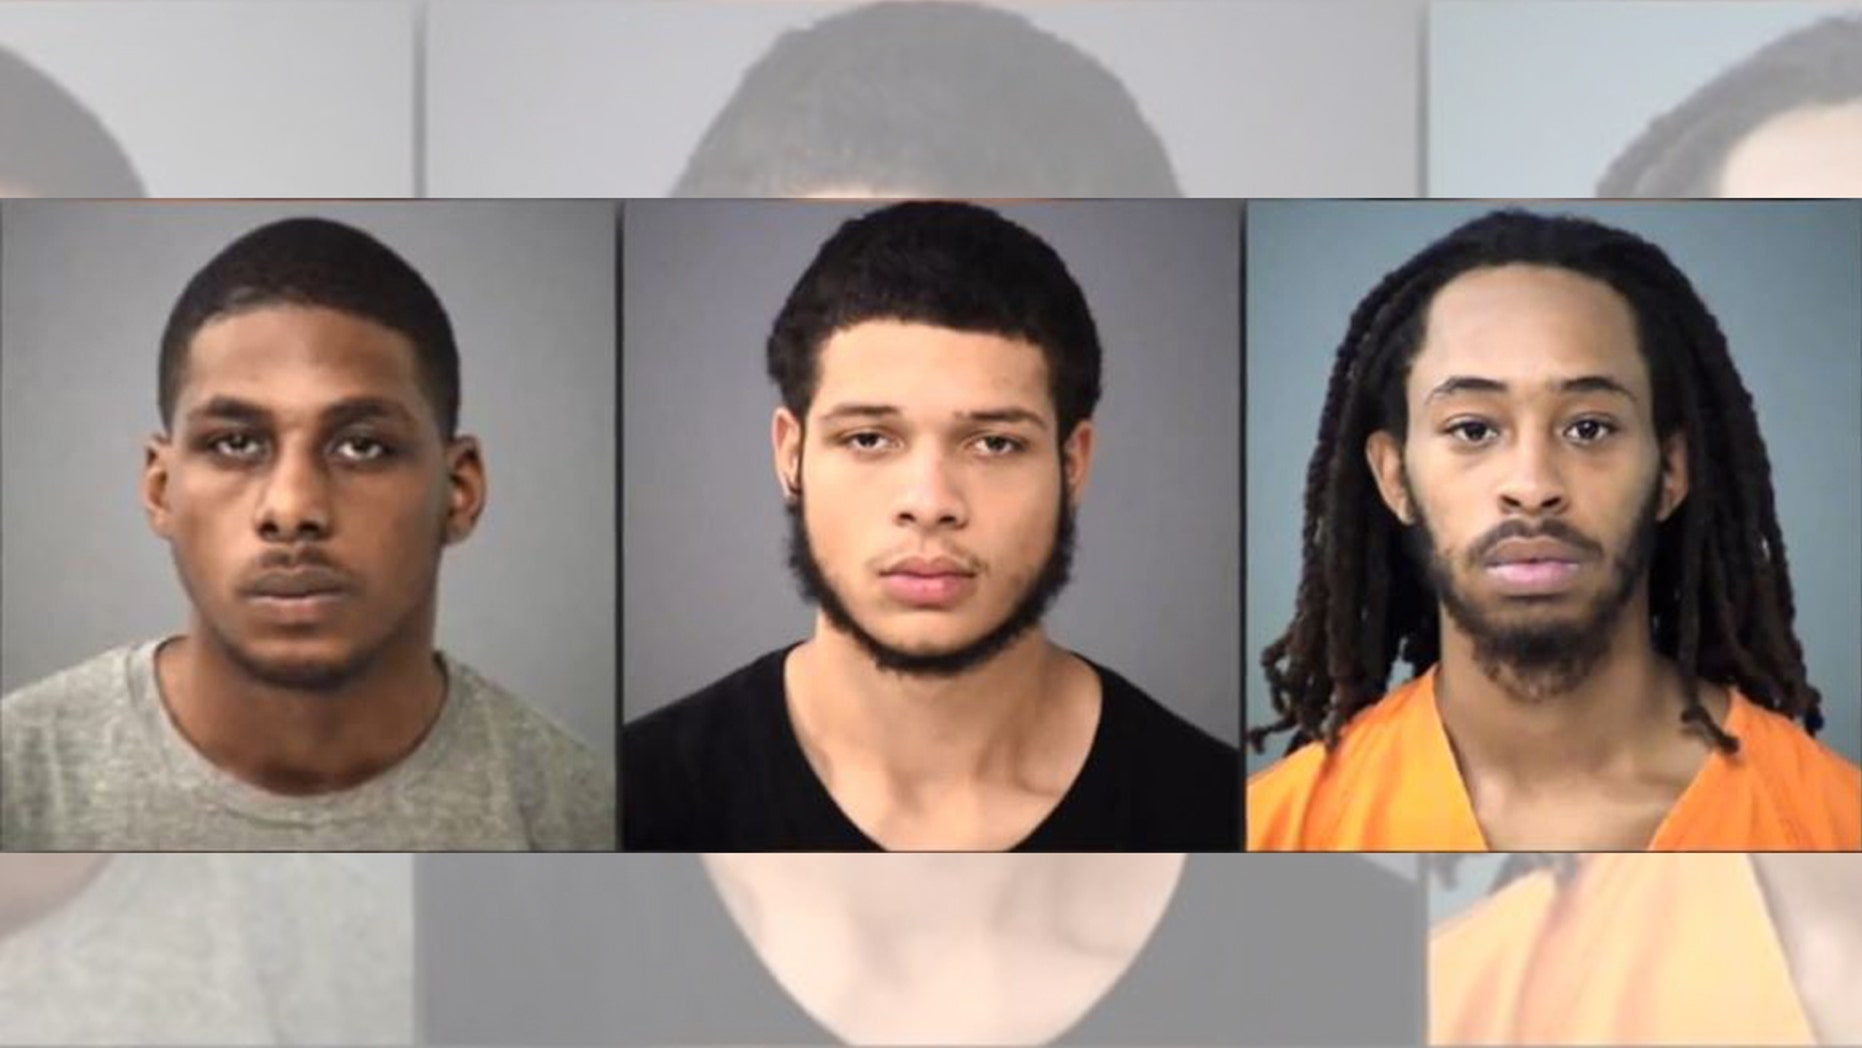 Suspects identified as Juwuan Terry, 18; Jason Epeards, 18; and Jasean Dale, 19, are accused of shooting and killing a pizza delivery driver Monday night, court documents said.